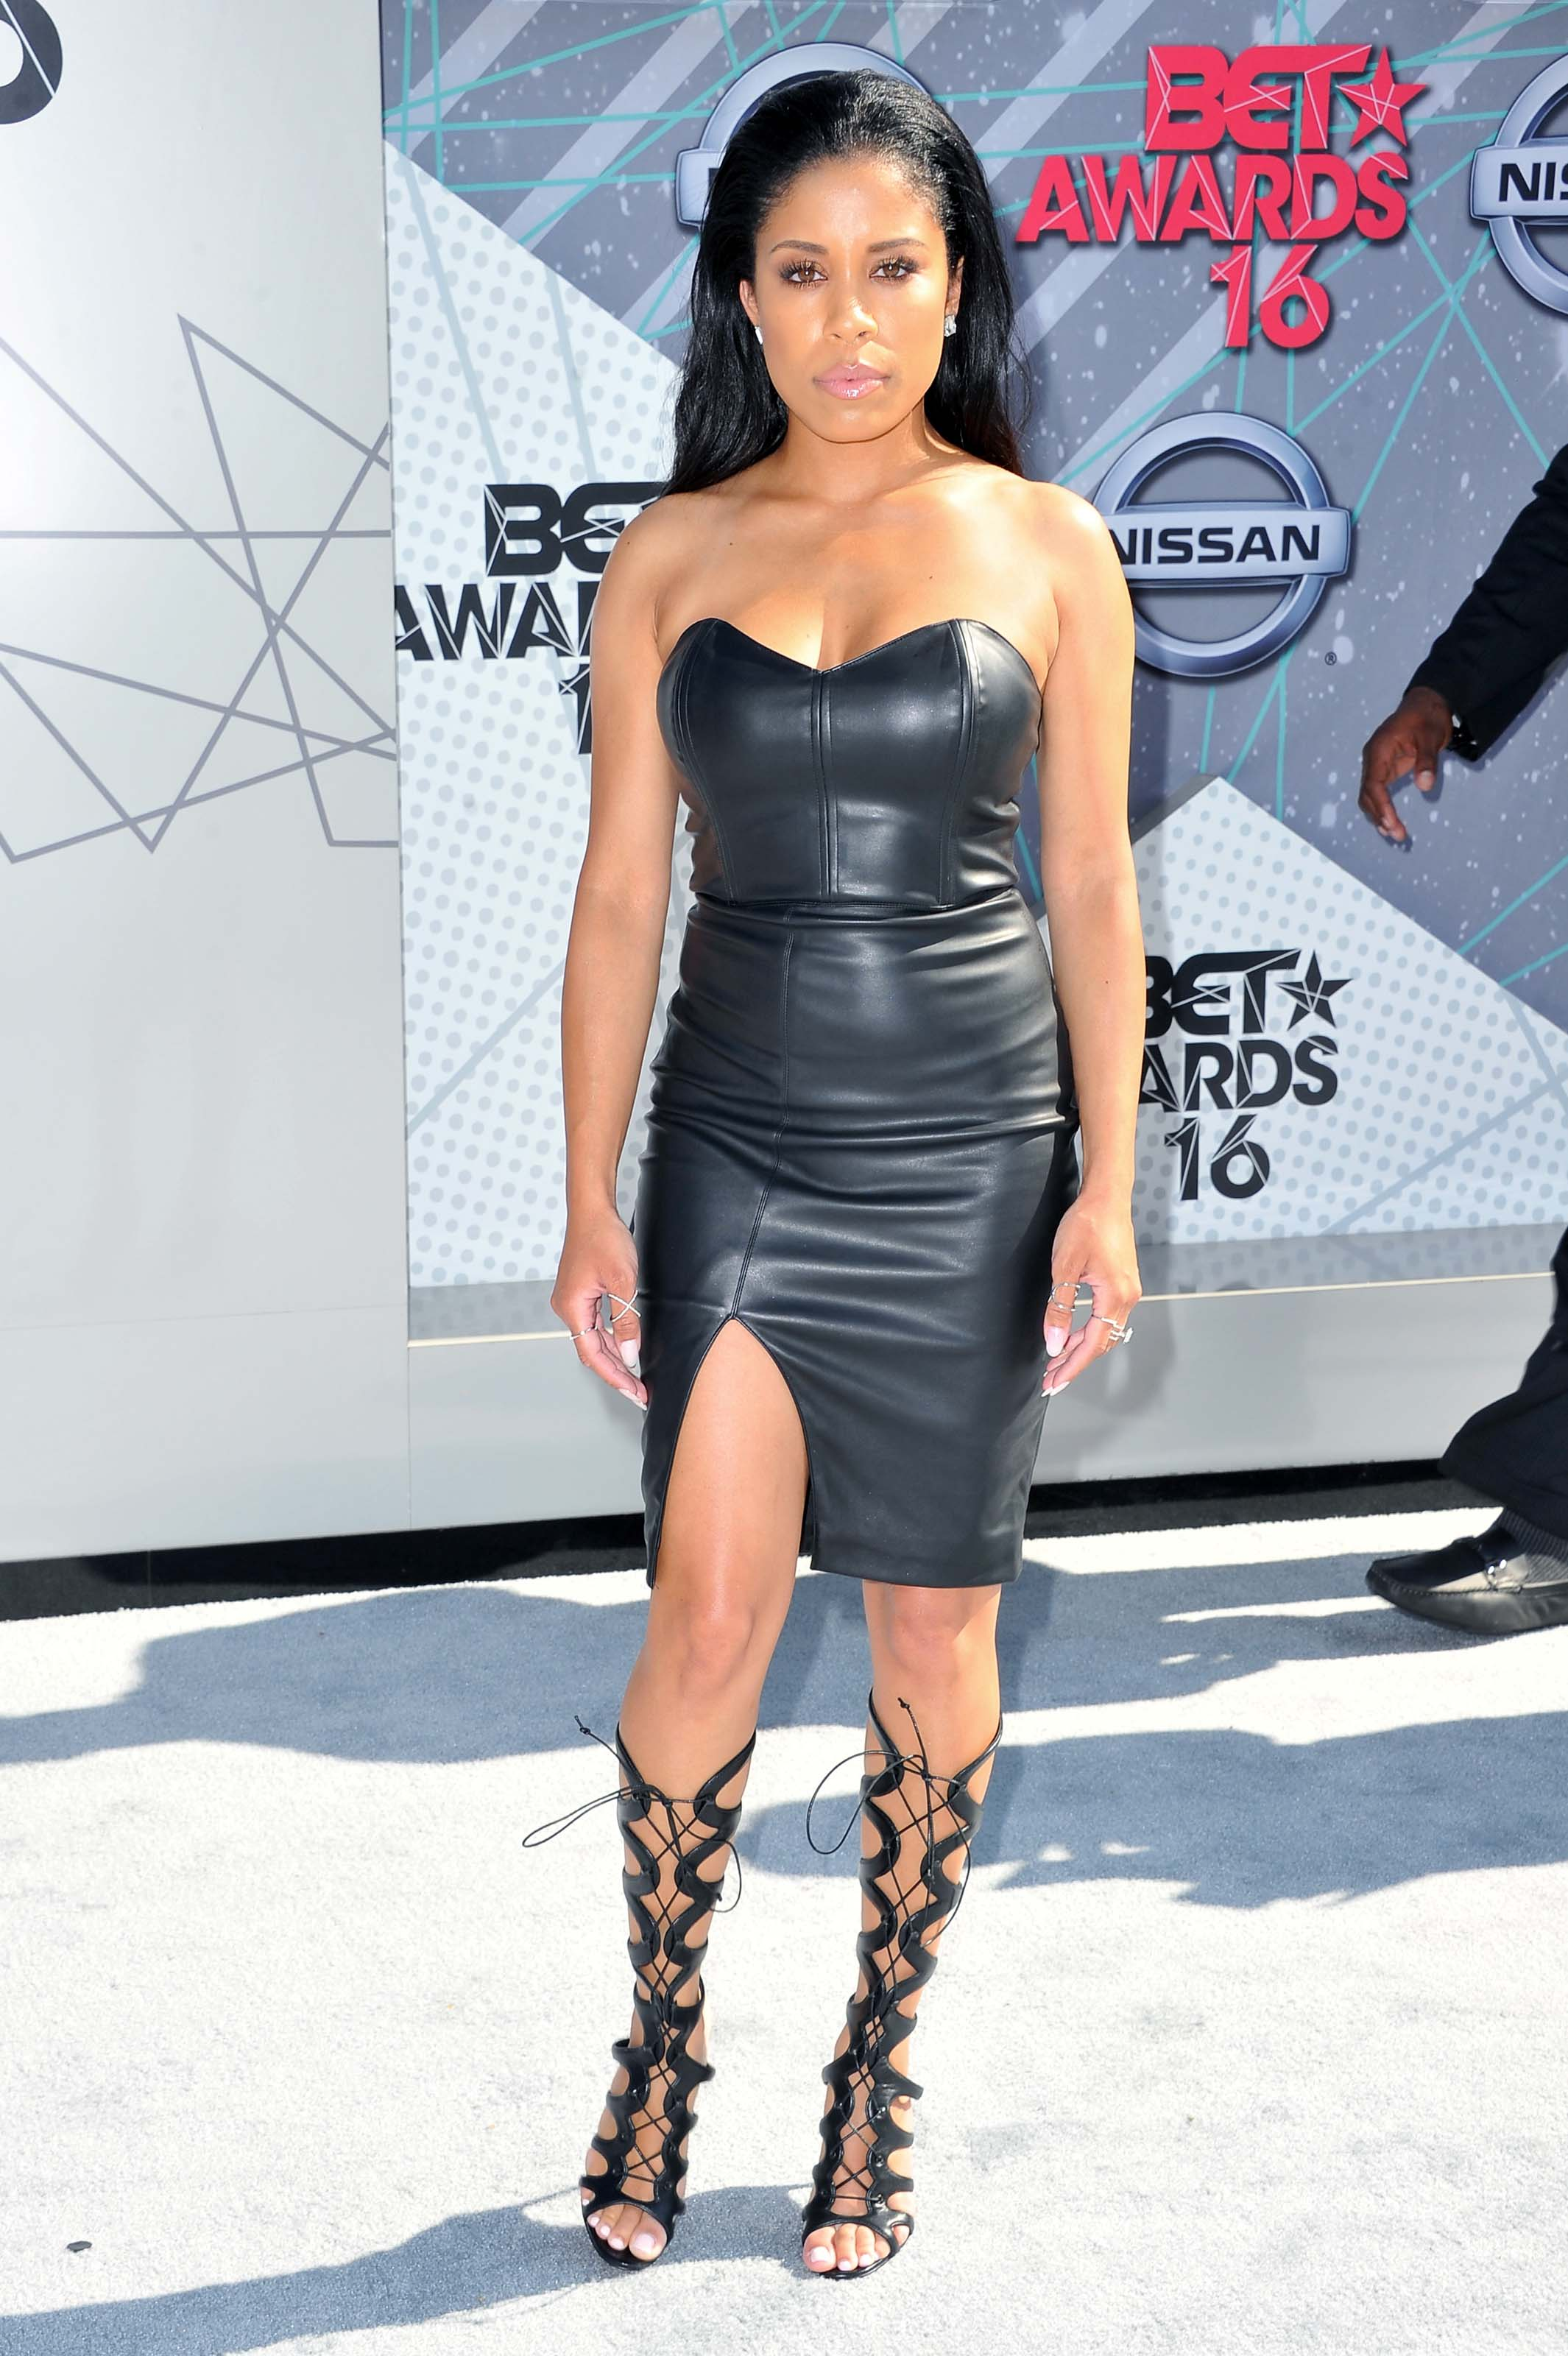 Keshia Chante attends the 2016 BET Awards